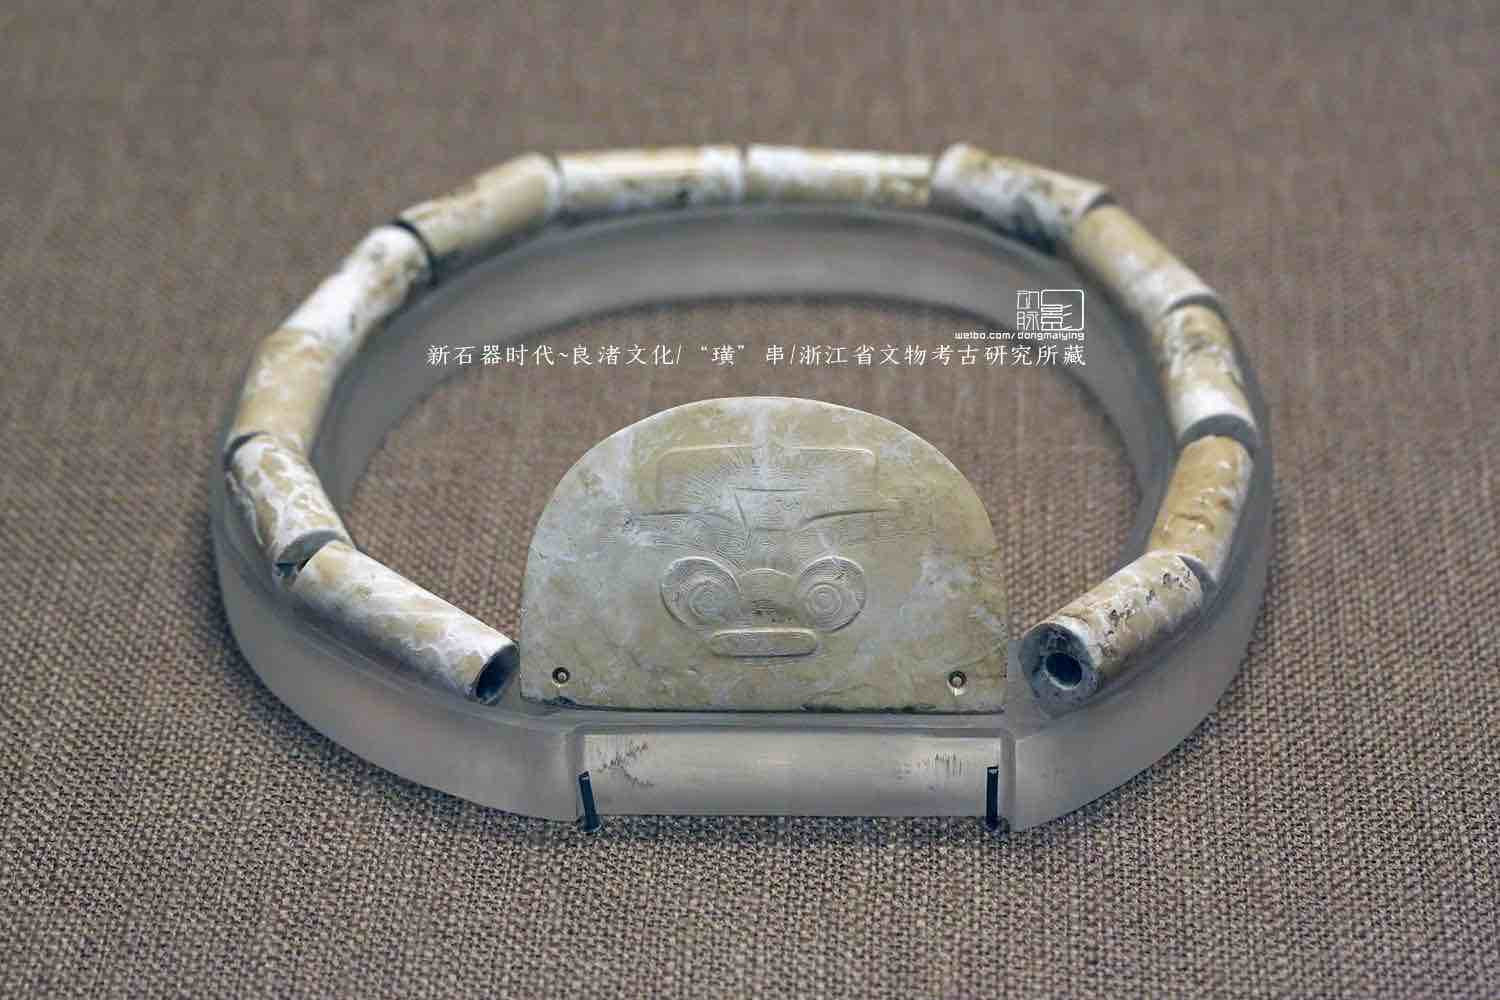 String of Ceremonial Jade Artifacts (Huang) — Zhejiang Antique Archaeology Institute